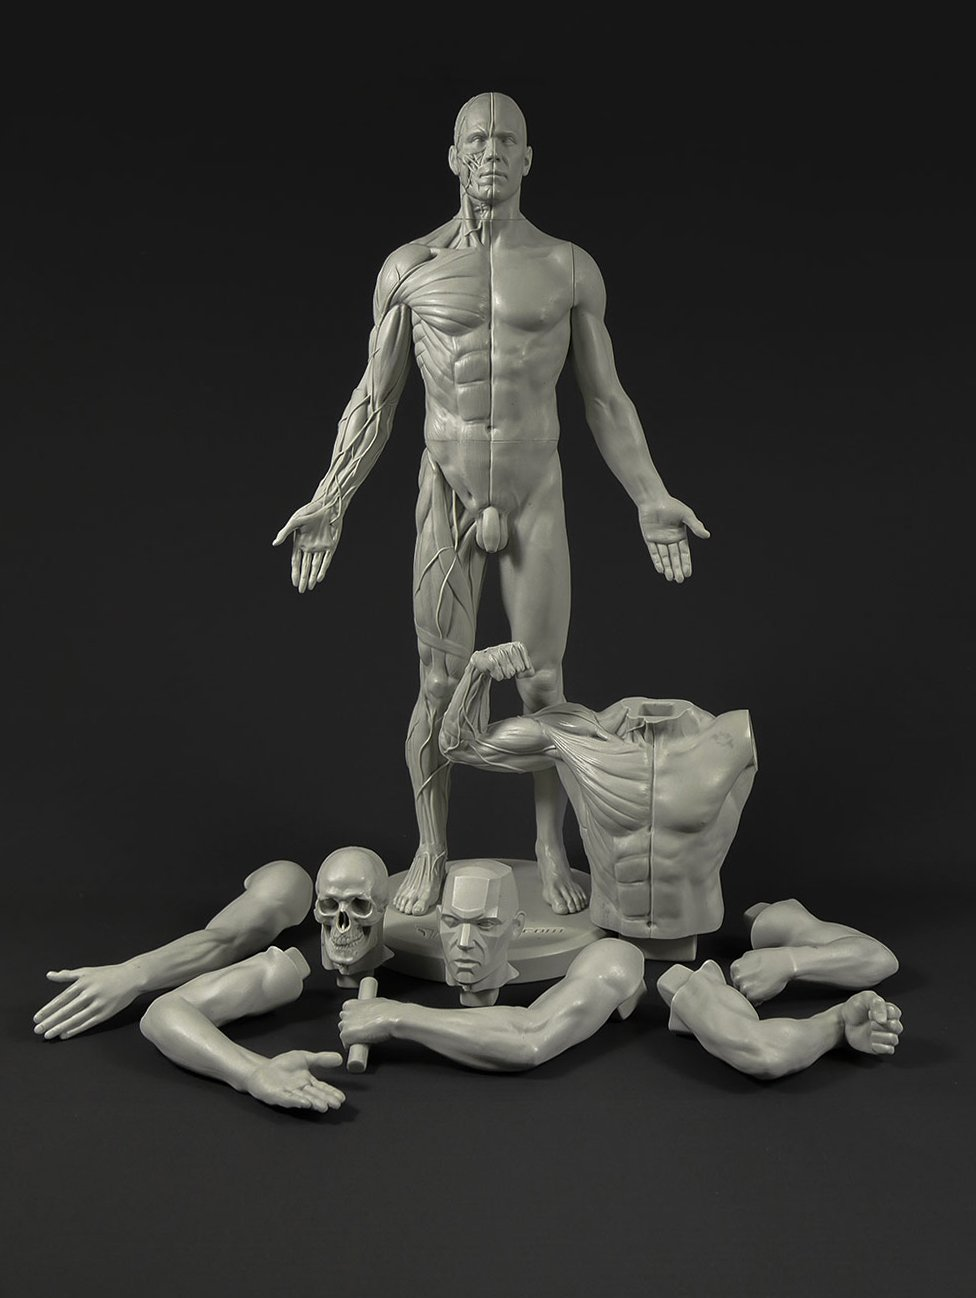 Male Adaptable Anatomy Figure: 13.4-inch Anatomical Reference for Artists (Grey) B074NWZY54